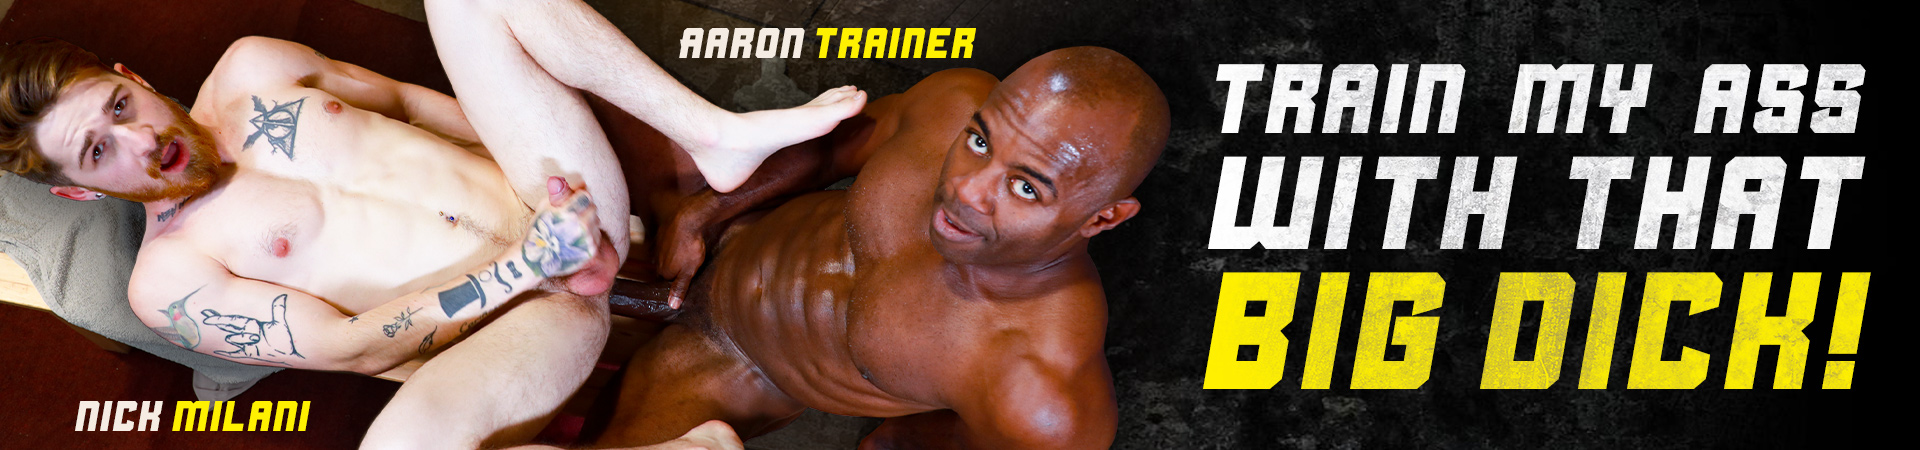 Train My Ass With That Big Dick! Featuring Aaron Trainer and Nick Milani